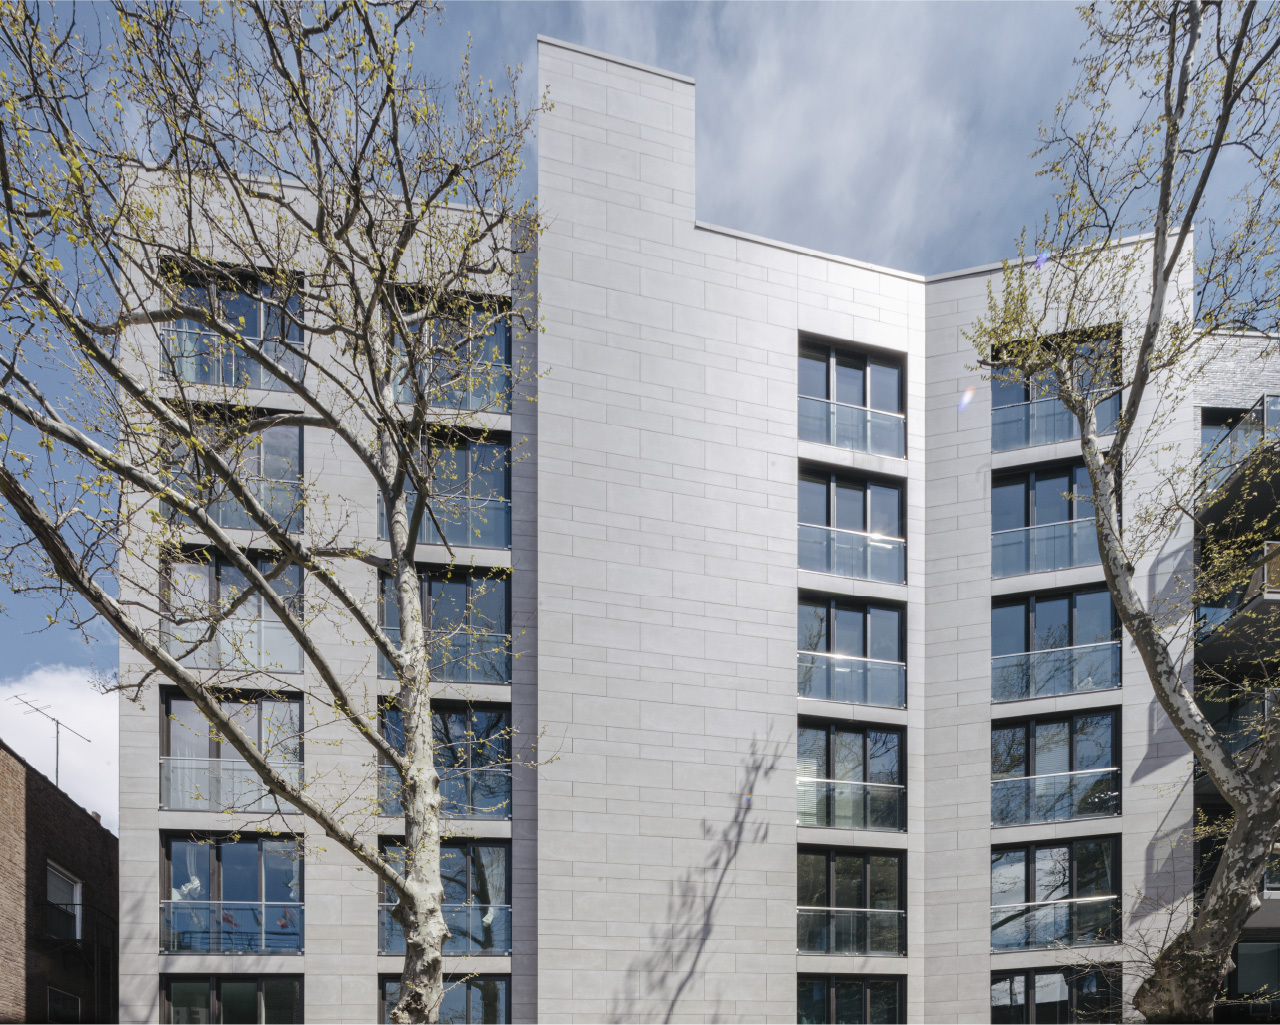 15 East 19 Street Porcelain cladding with mitered corners